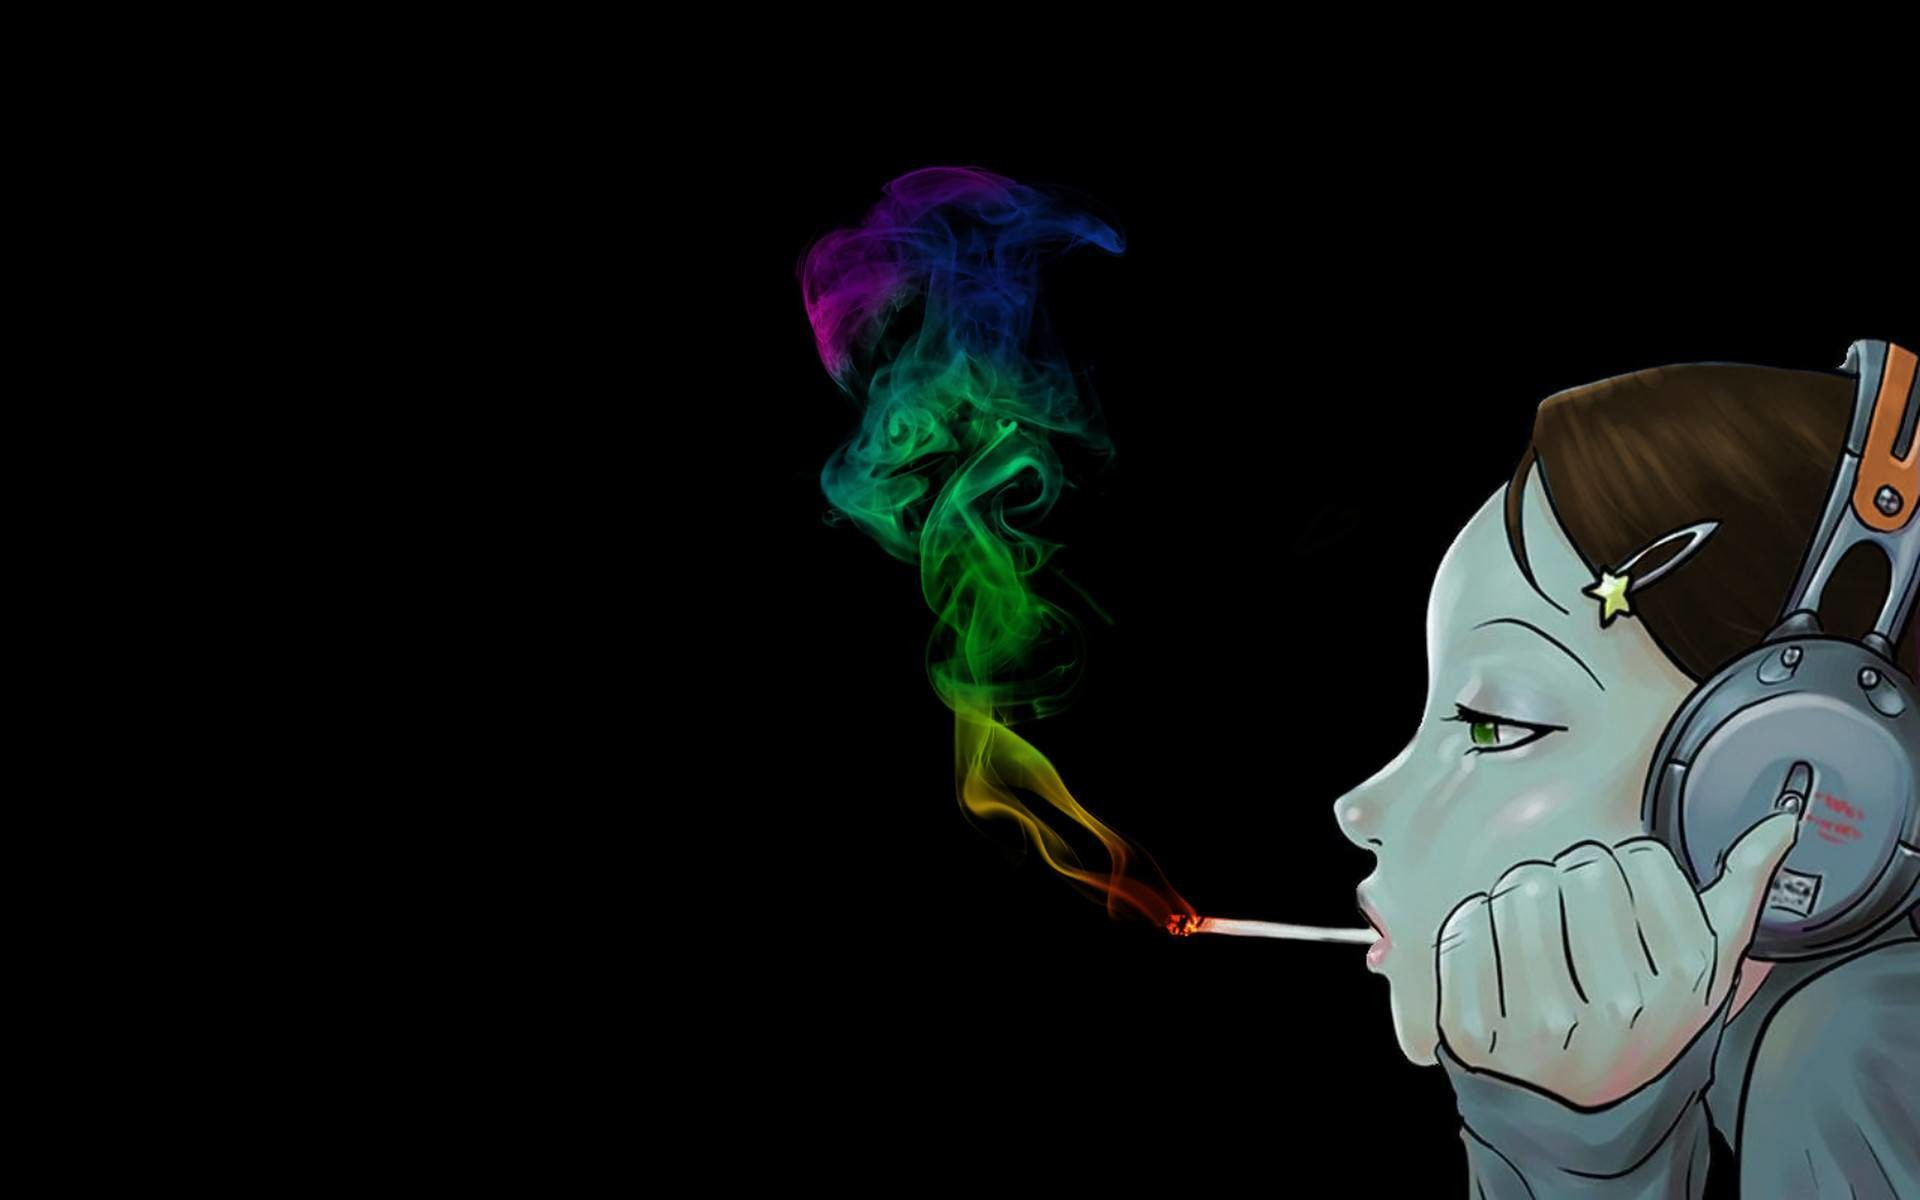 Res: 1920x1200, Smoking Anime Music Wallpaper HD